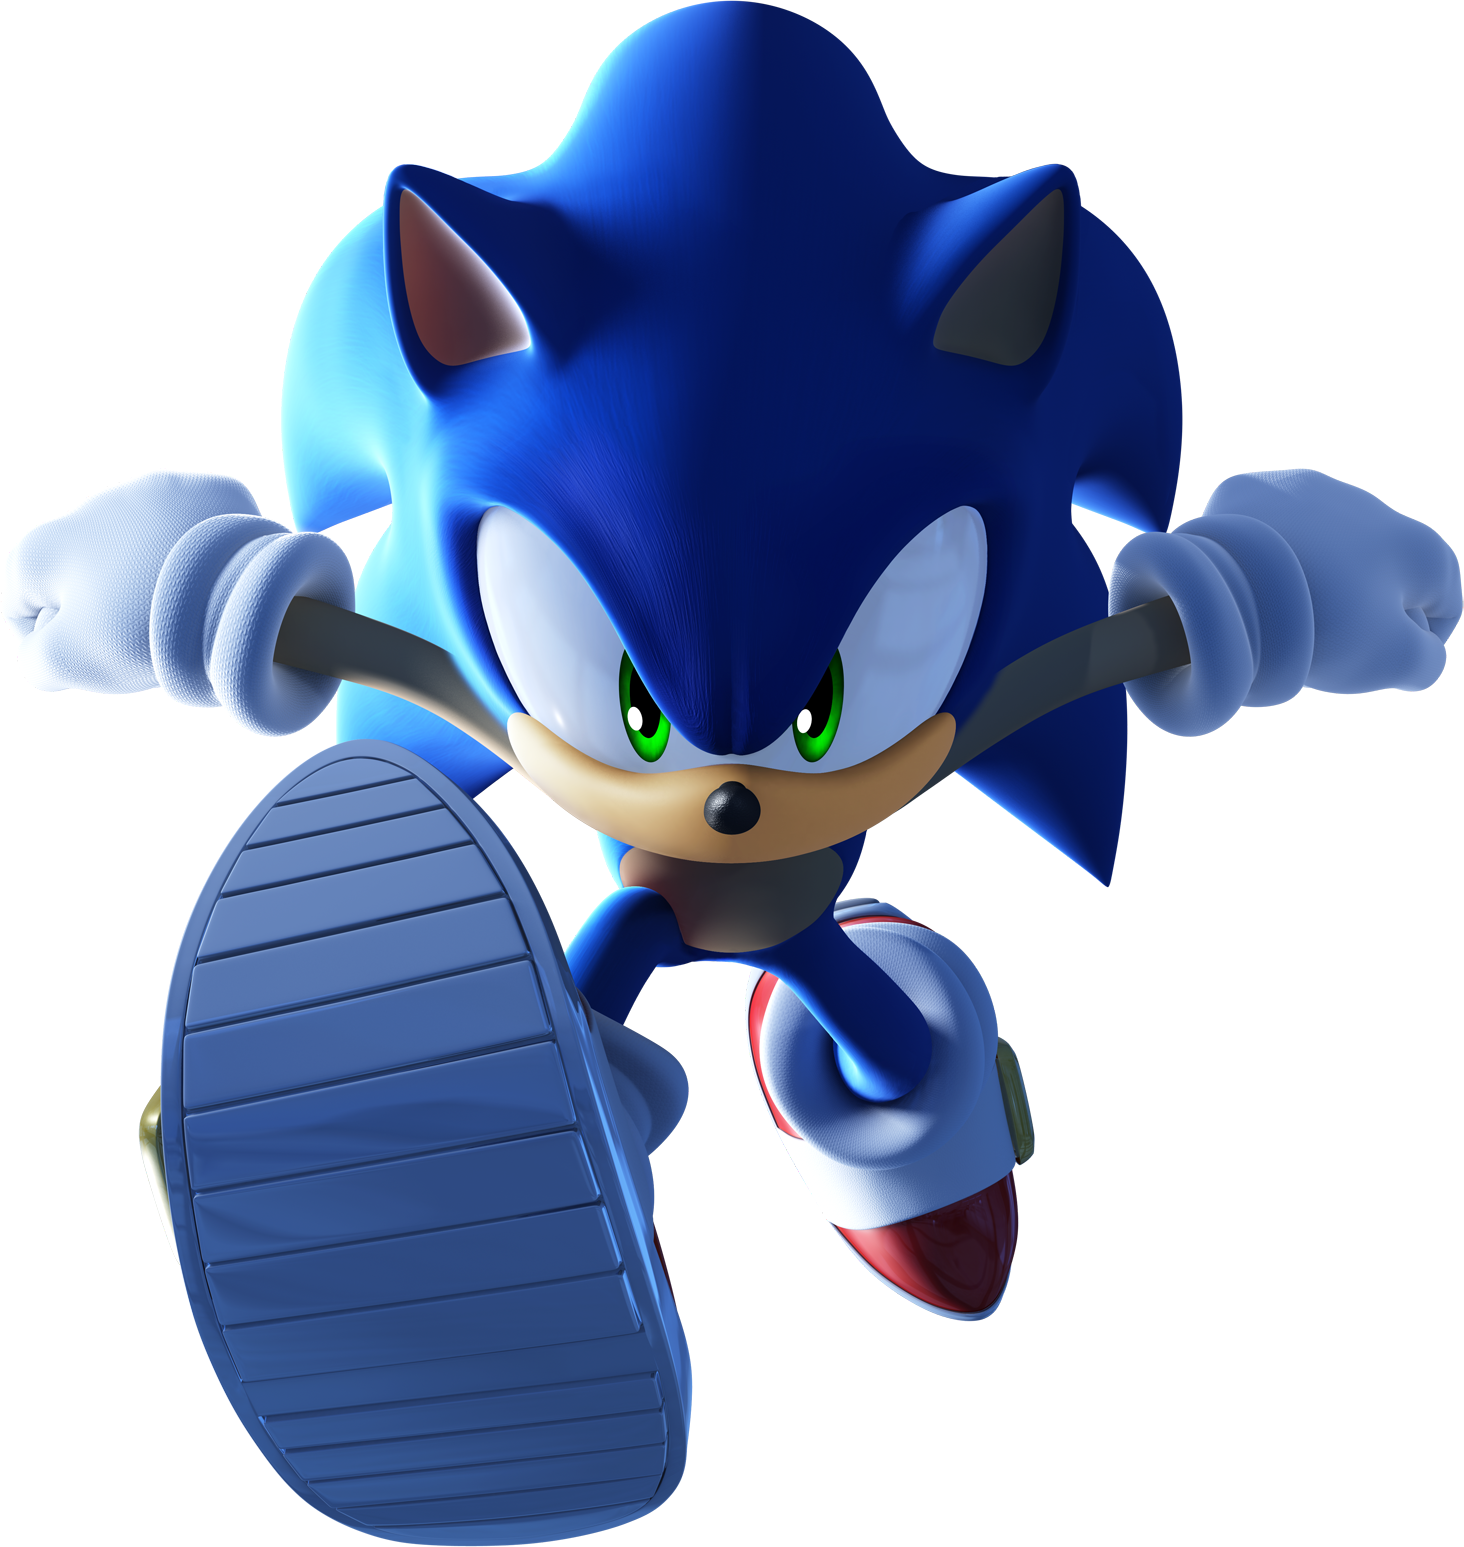 Blue Sonic Toy Electric Unleashed The Hedgehog PNG Image